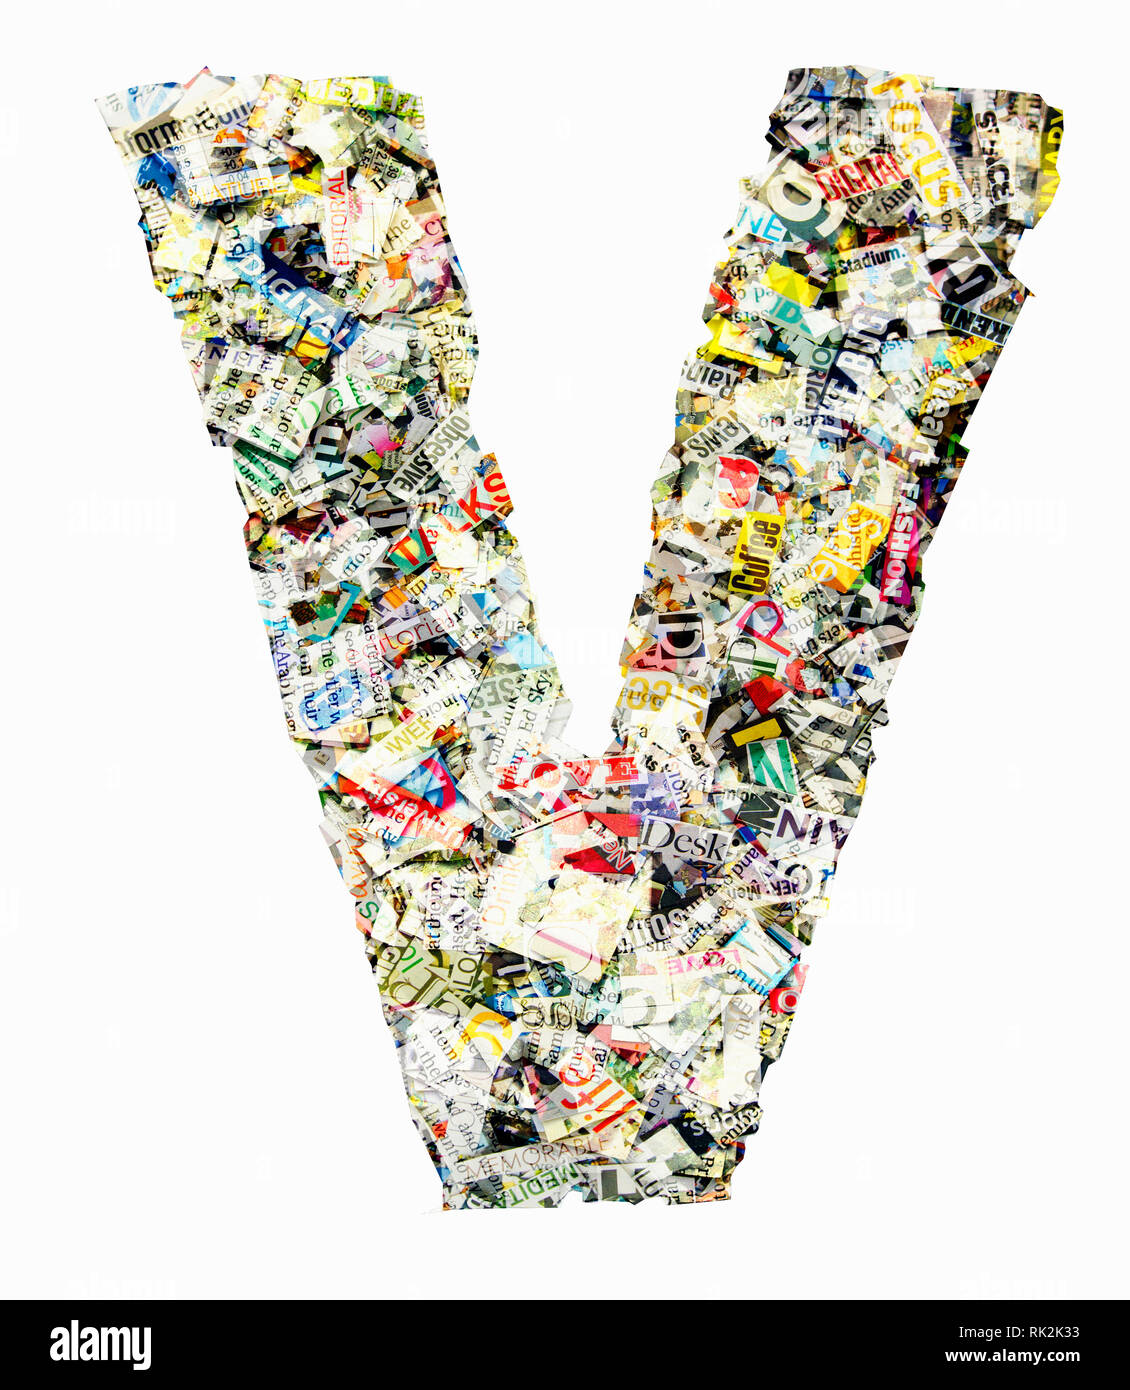 The letter V made from newspaper confetti Stock Photo: 235472135 - Alamy